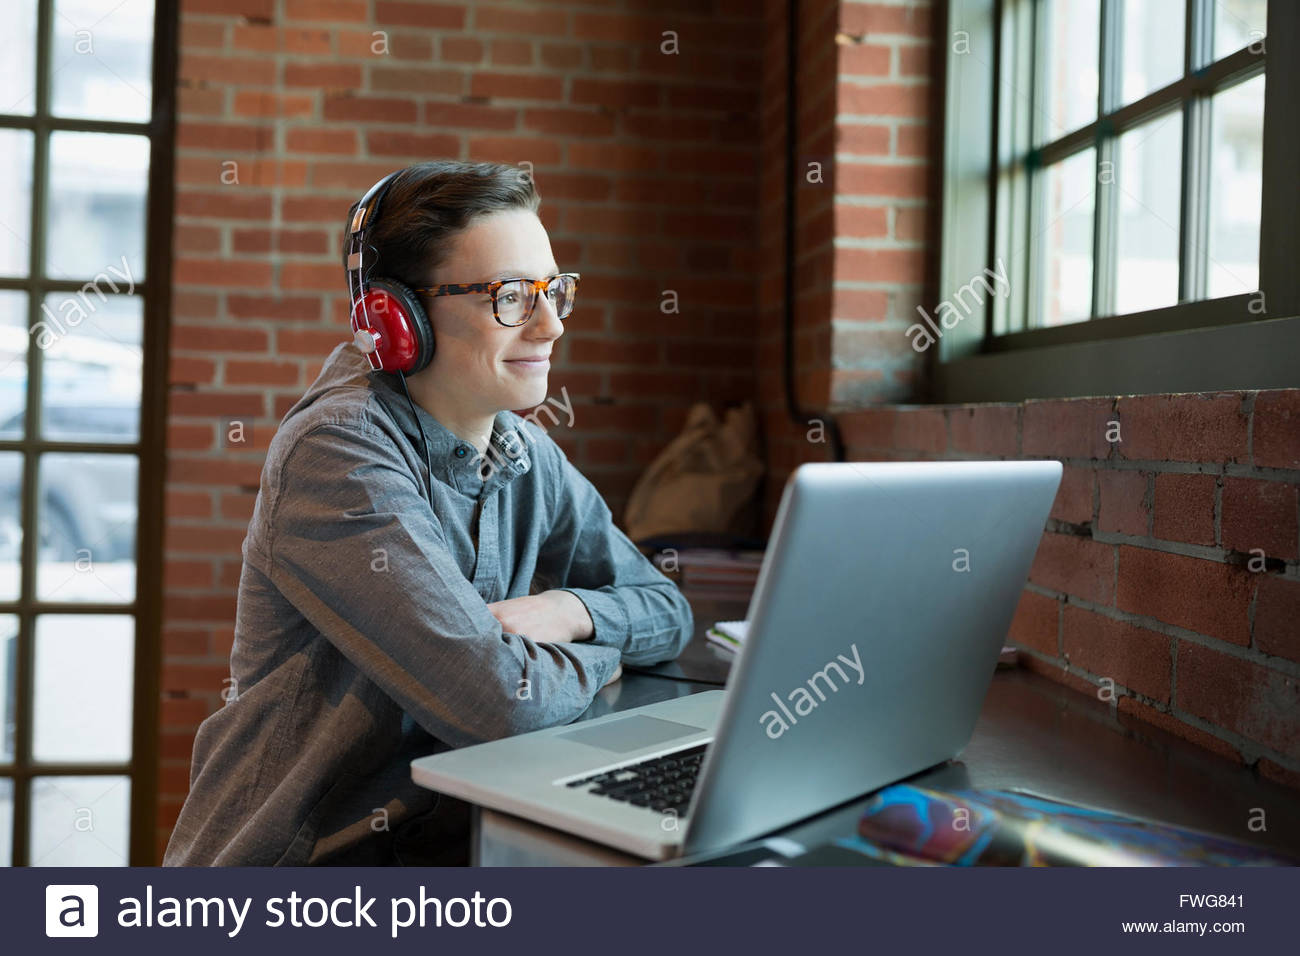 Smiling boy with headphones at laptop in coffee shop - Stock Image